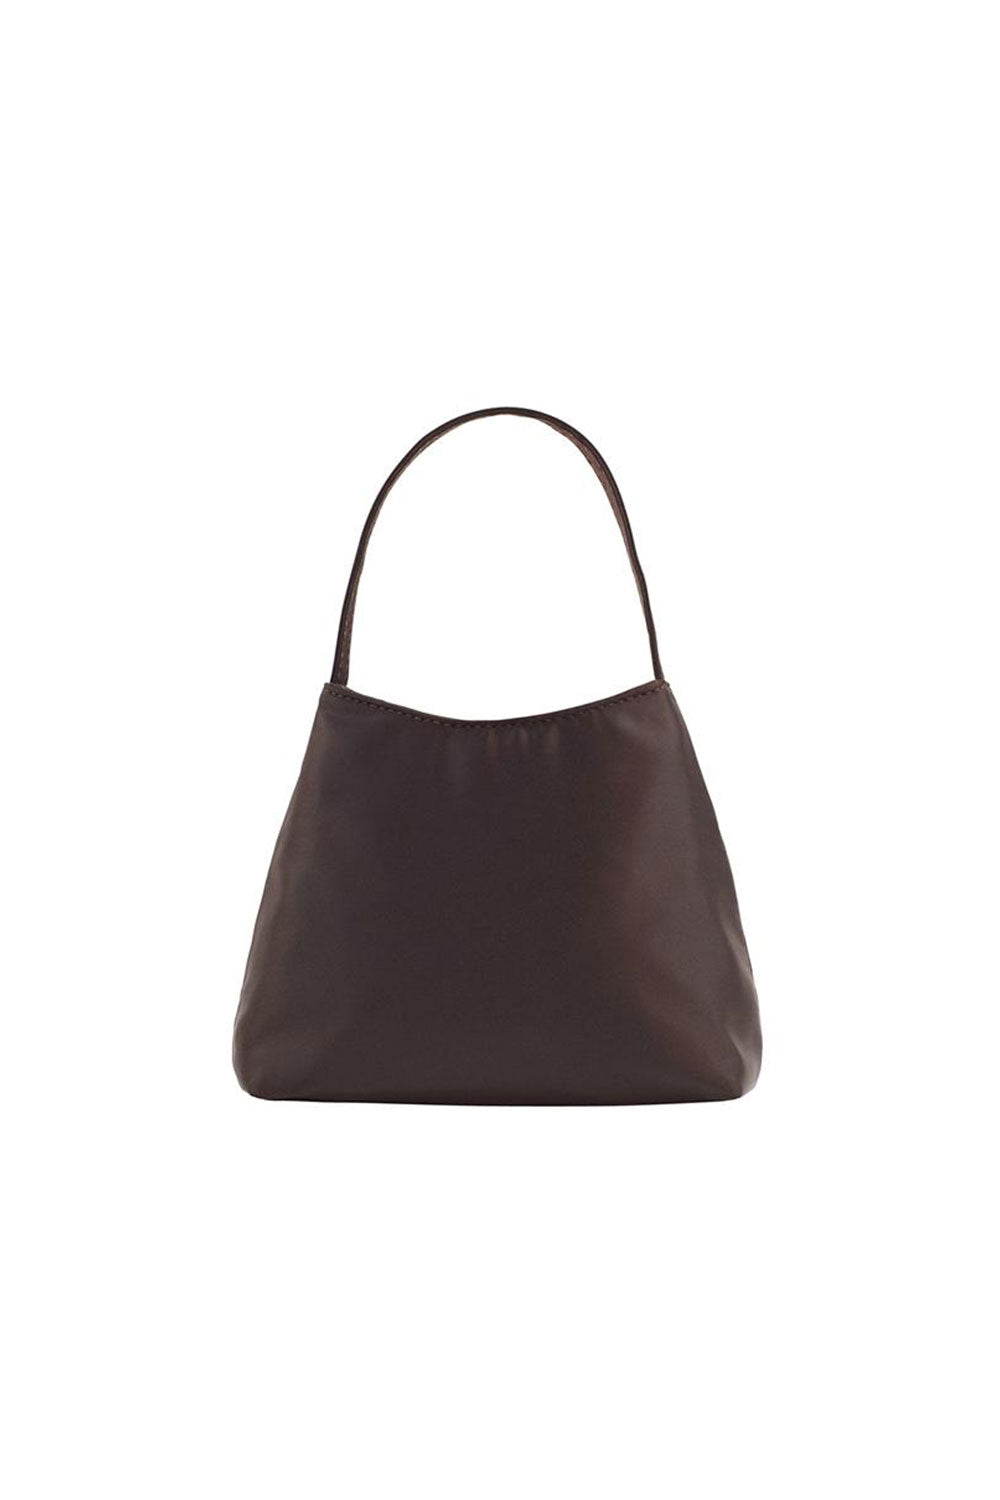 THE MINI CHLOE SATIN | CHOCOLATE